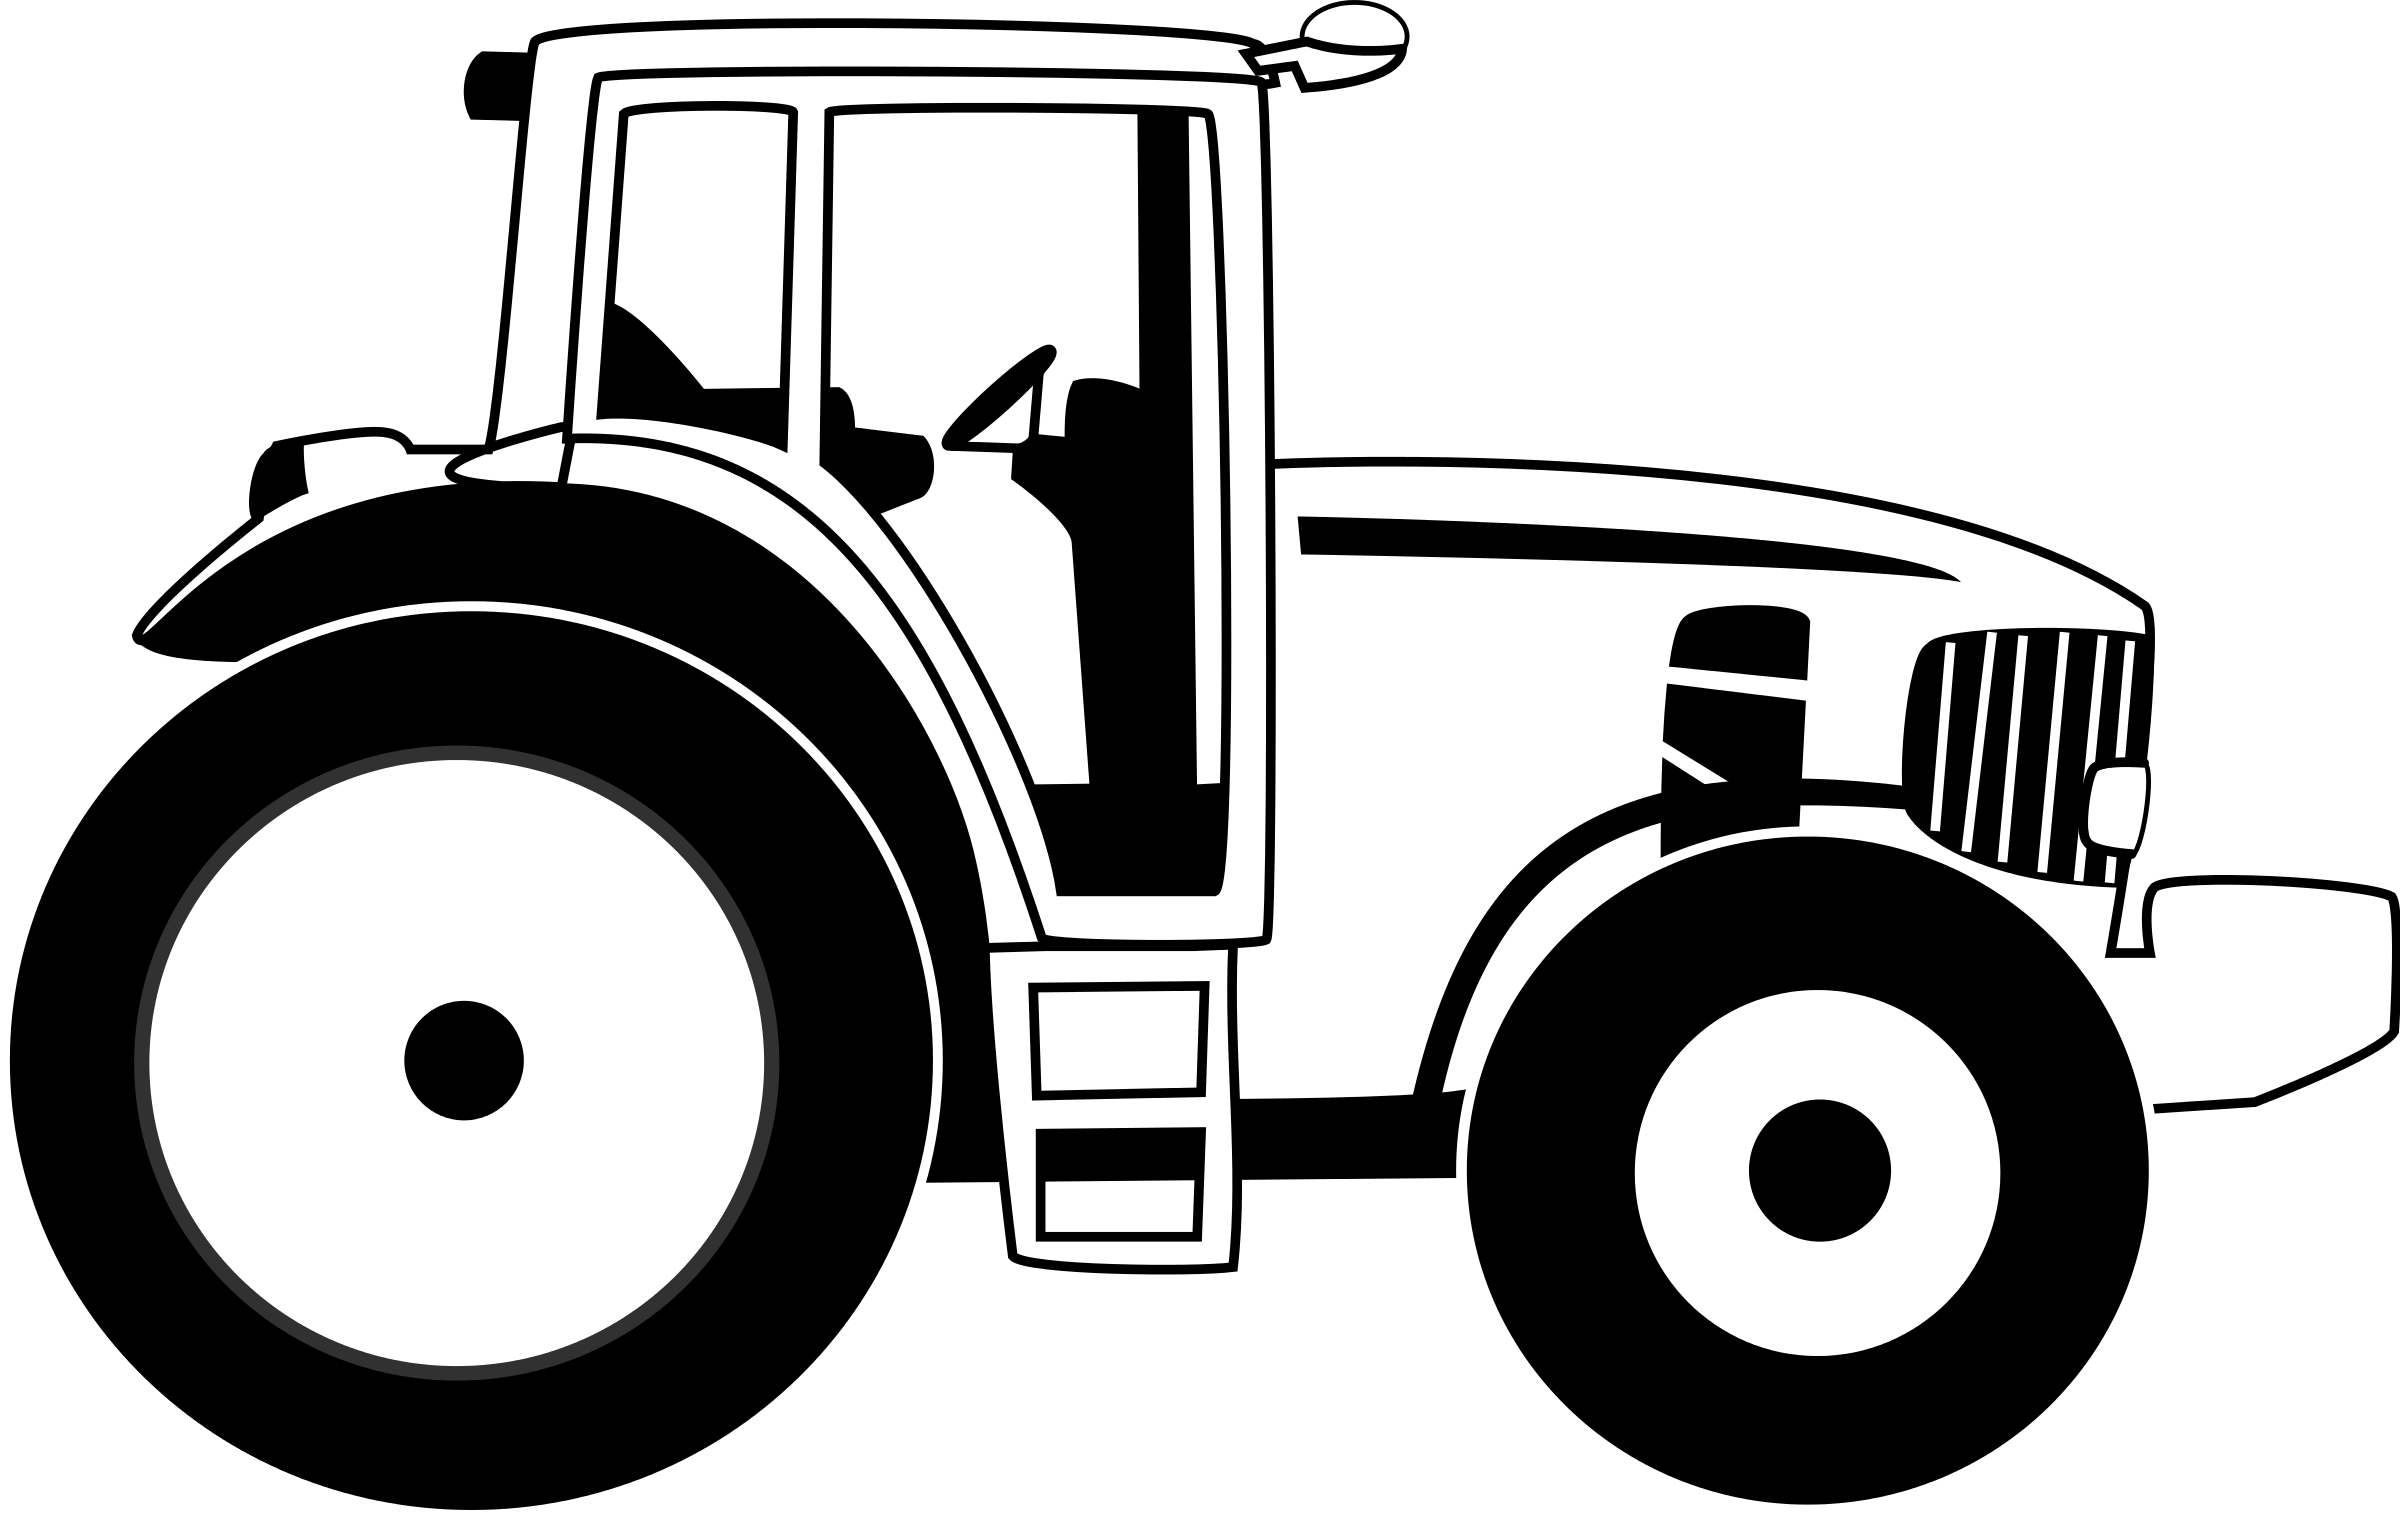 Tractor clipart black and white in field svg Pin by Teresa Goga on Brantlee | Tractor clipart, Tractors, White ... svg